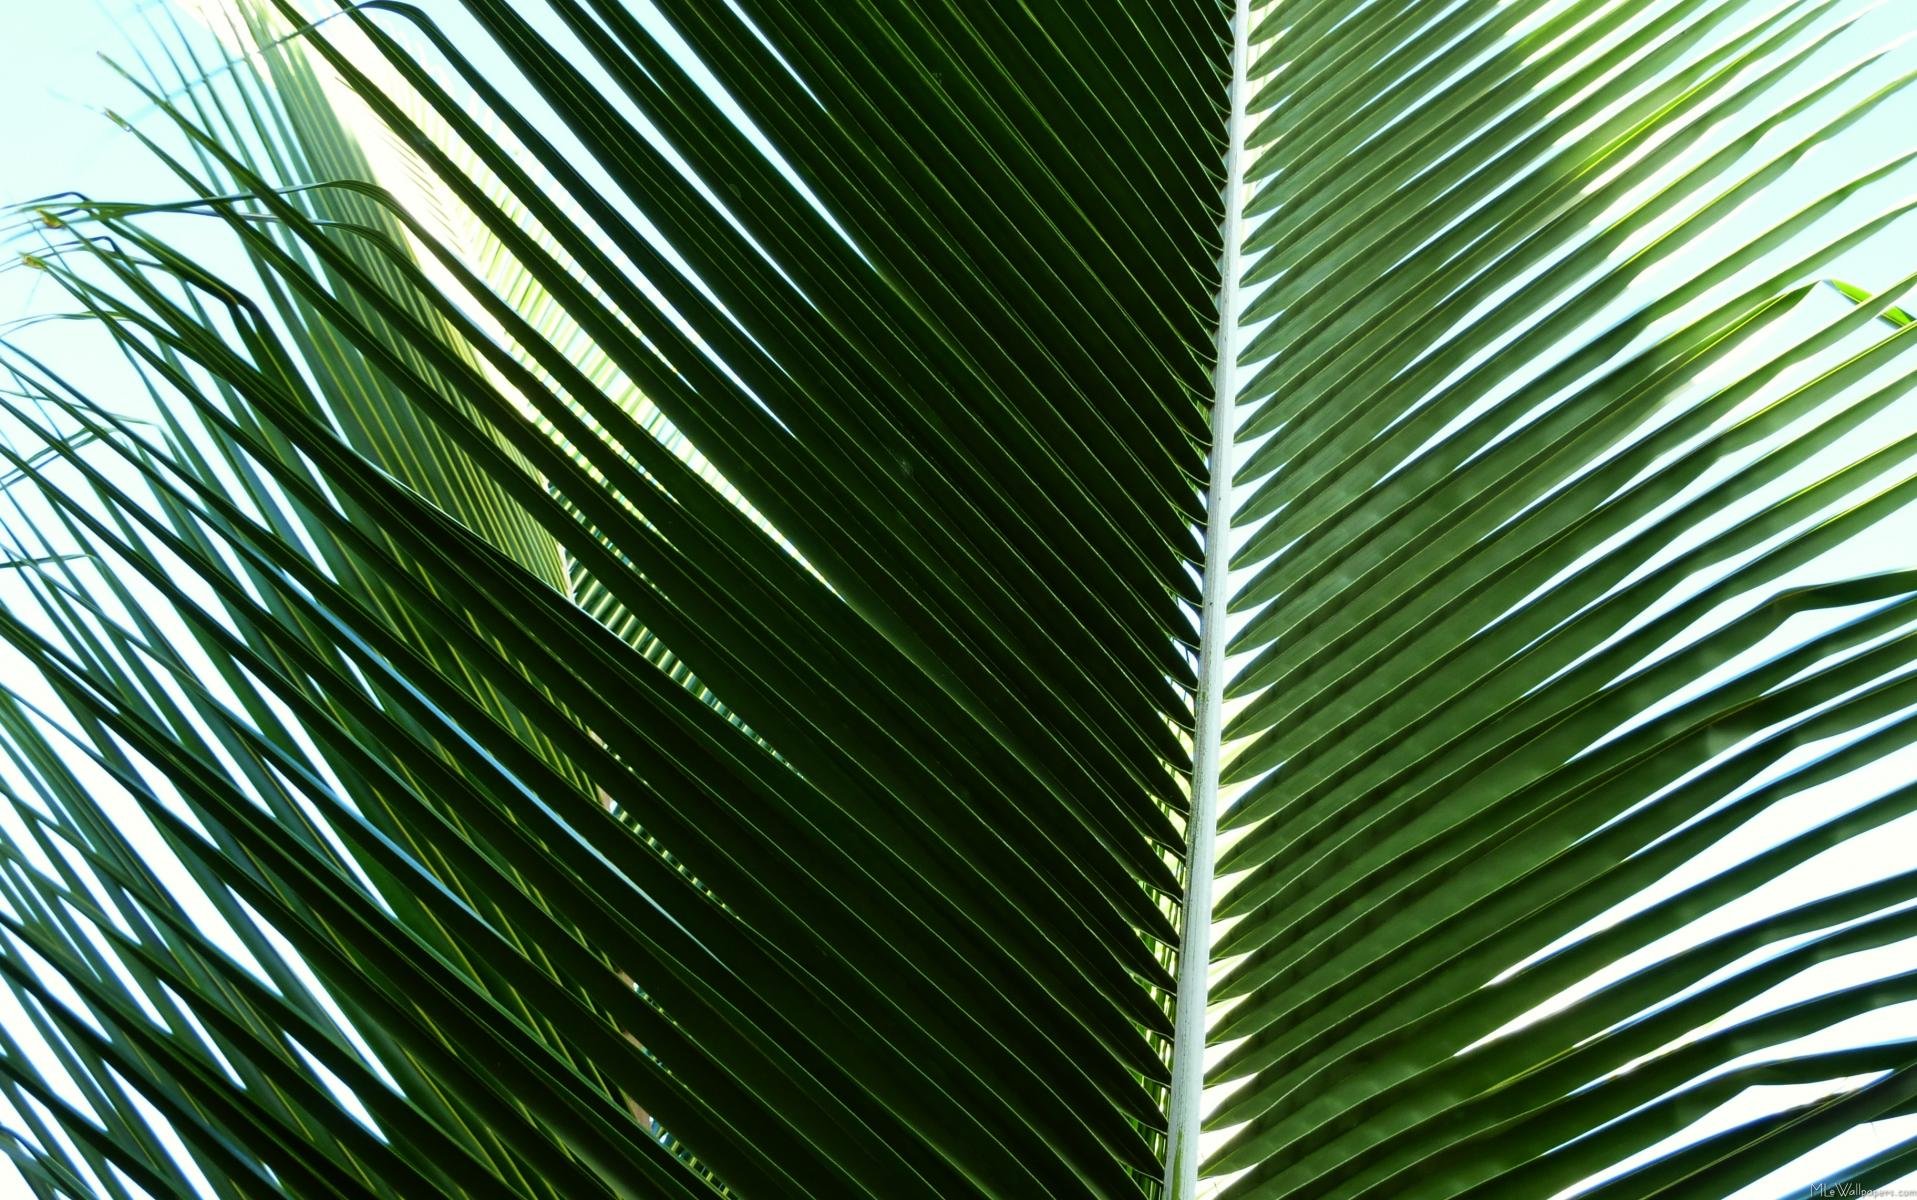 MLeWallpaperscom   Overlapping Palm Fronds 1917x1200